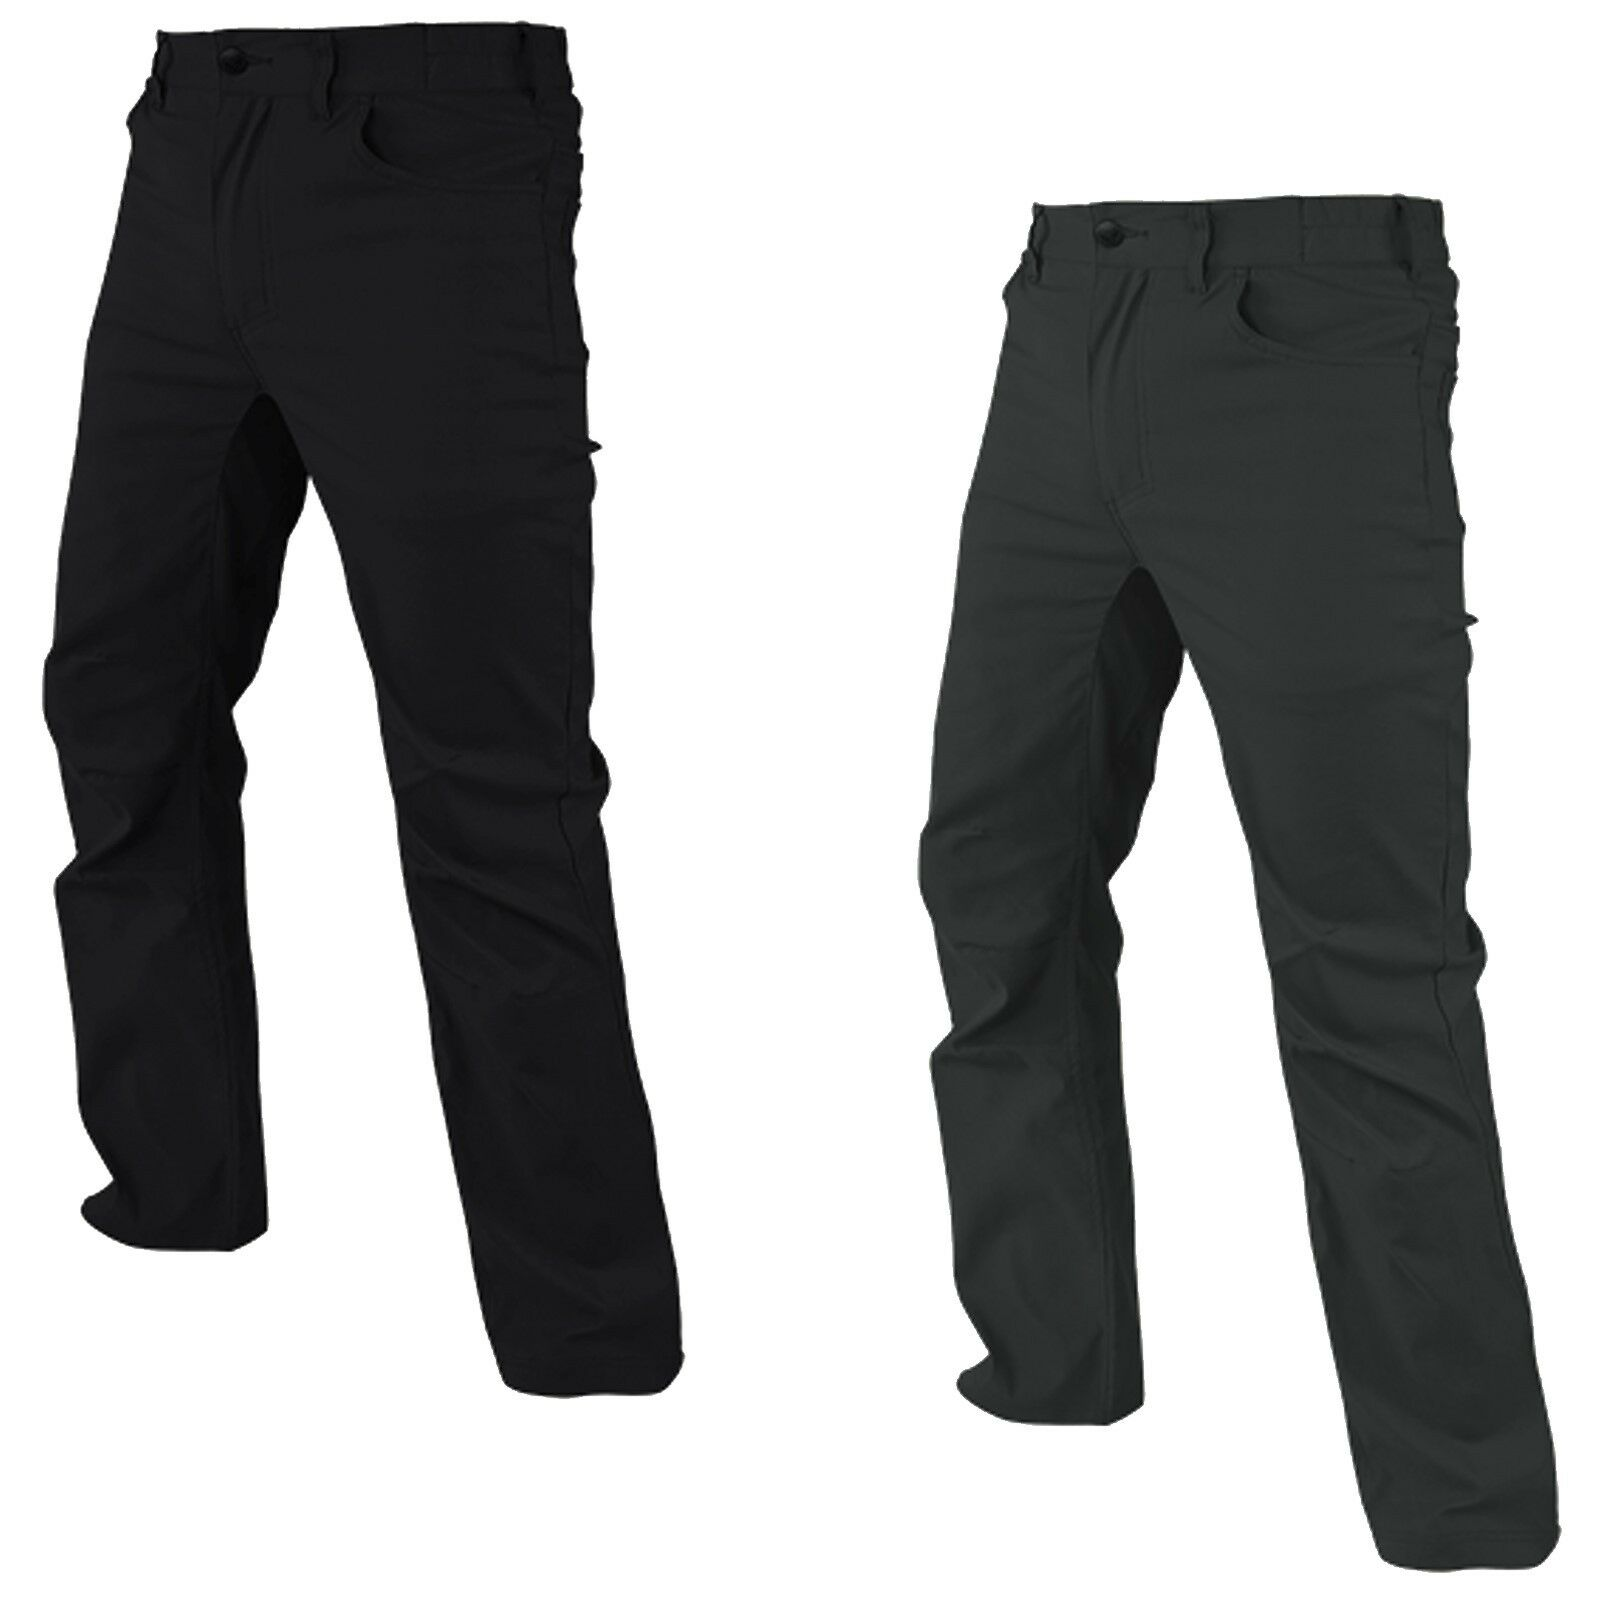 Condor 101119 Cipher Lightweight Stretch Elastic Tactical Casual Work Pants